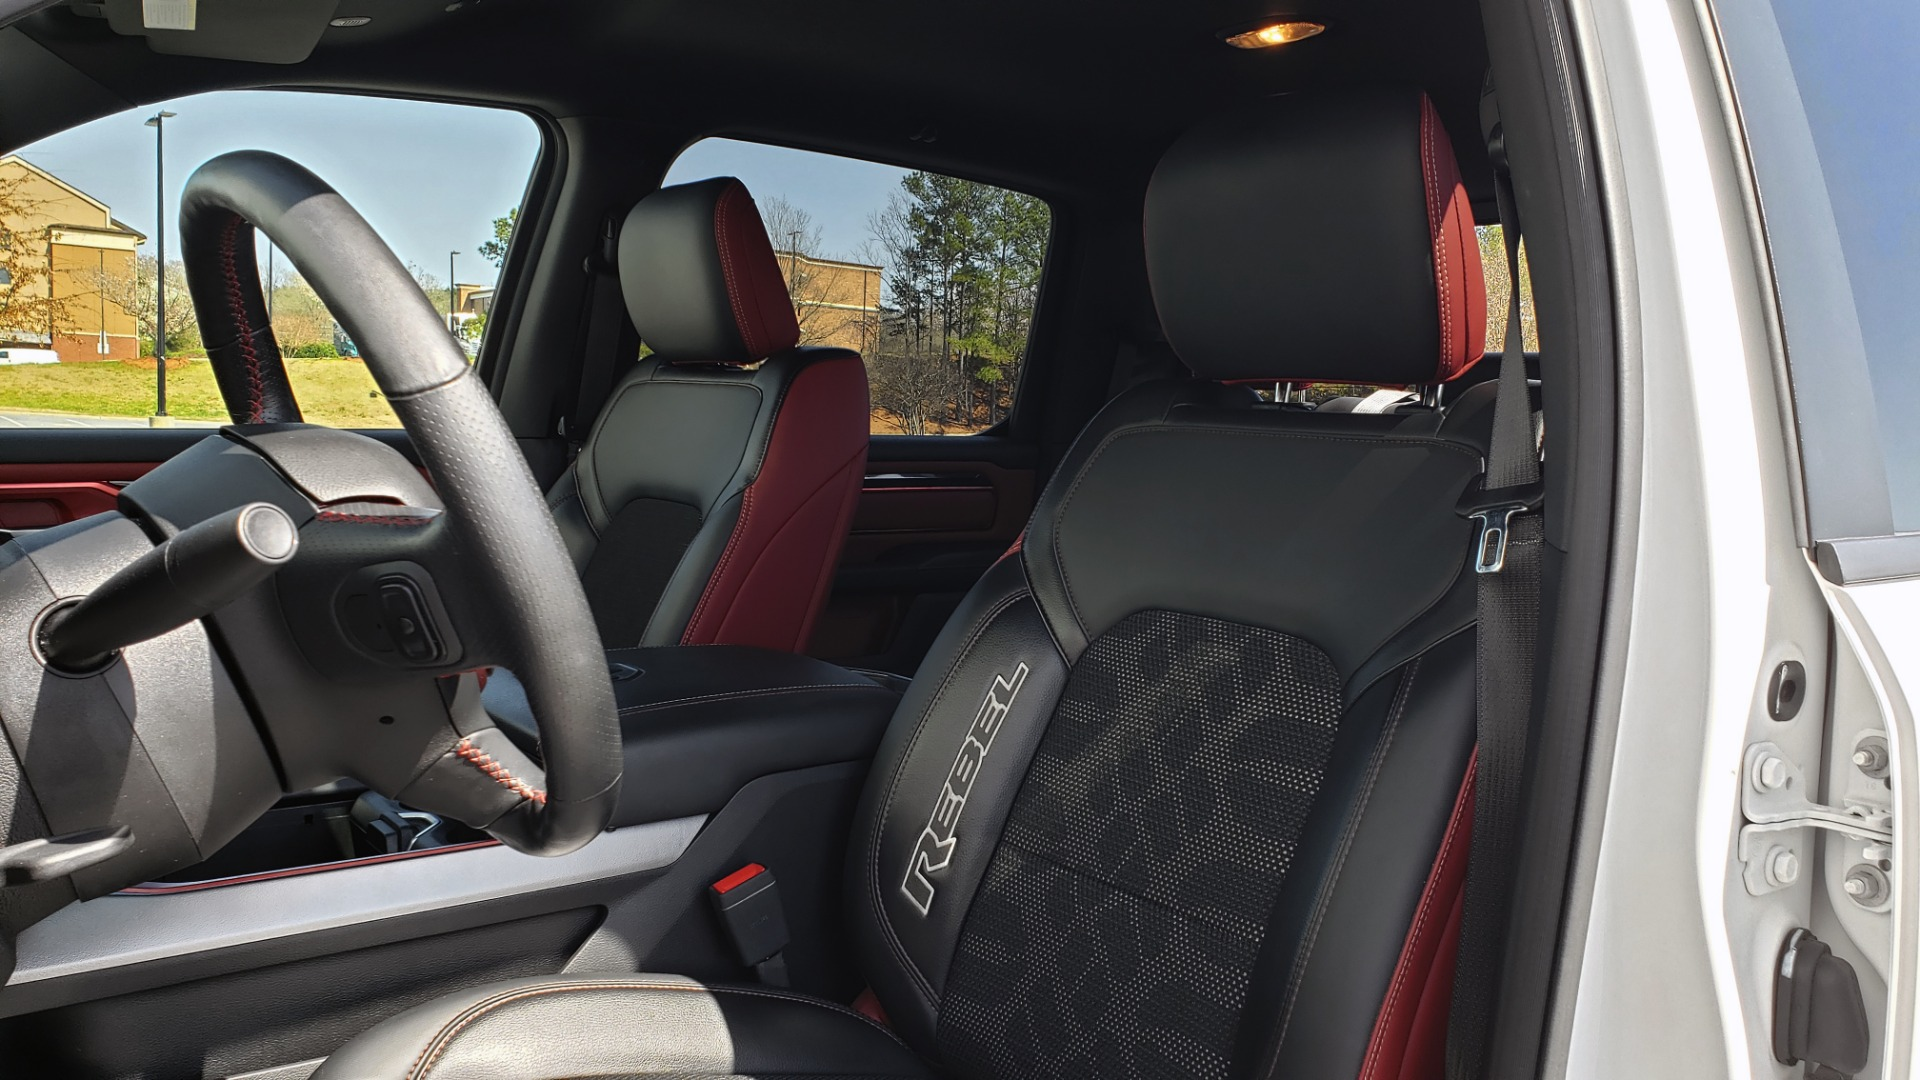 Used 2019 Ram 1500 REBEL CREWCAB 4X4 / 5.7L V8 HEMI / 8-SPD AUTO / REARVIEW for sale Sold at Formula Imports in Charlotte NC 28227 34